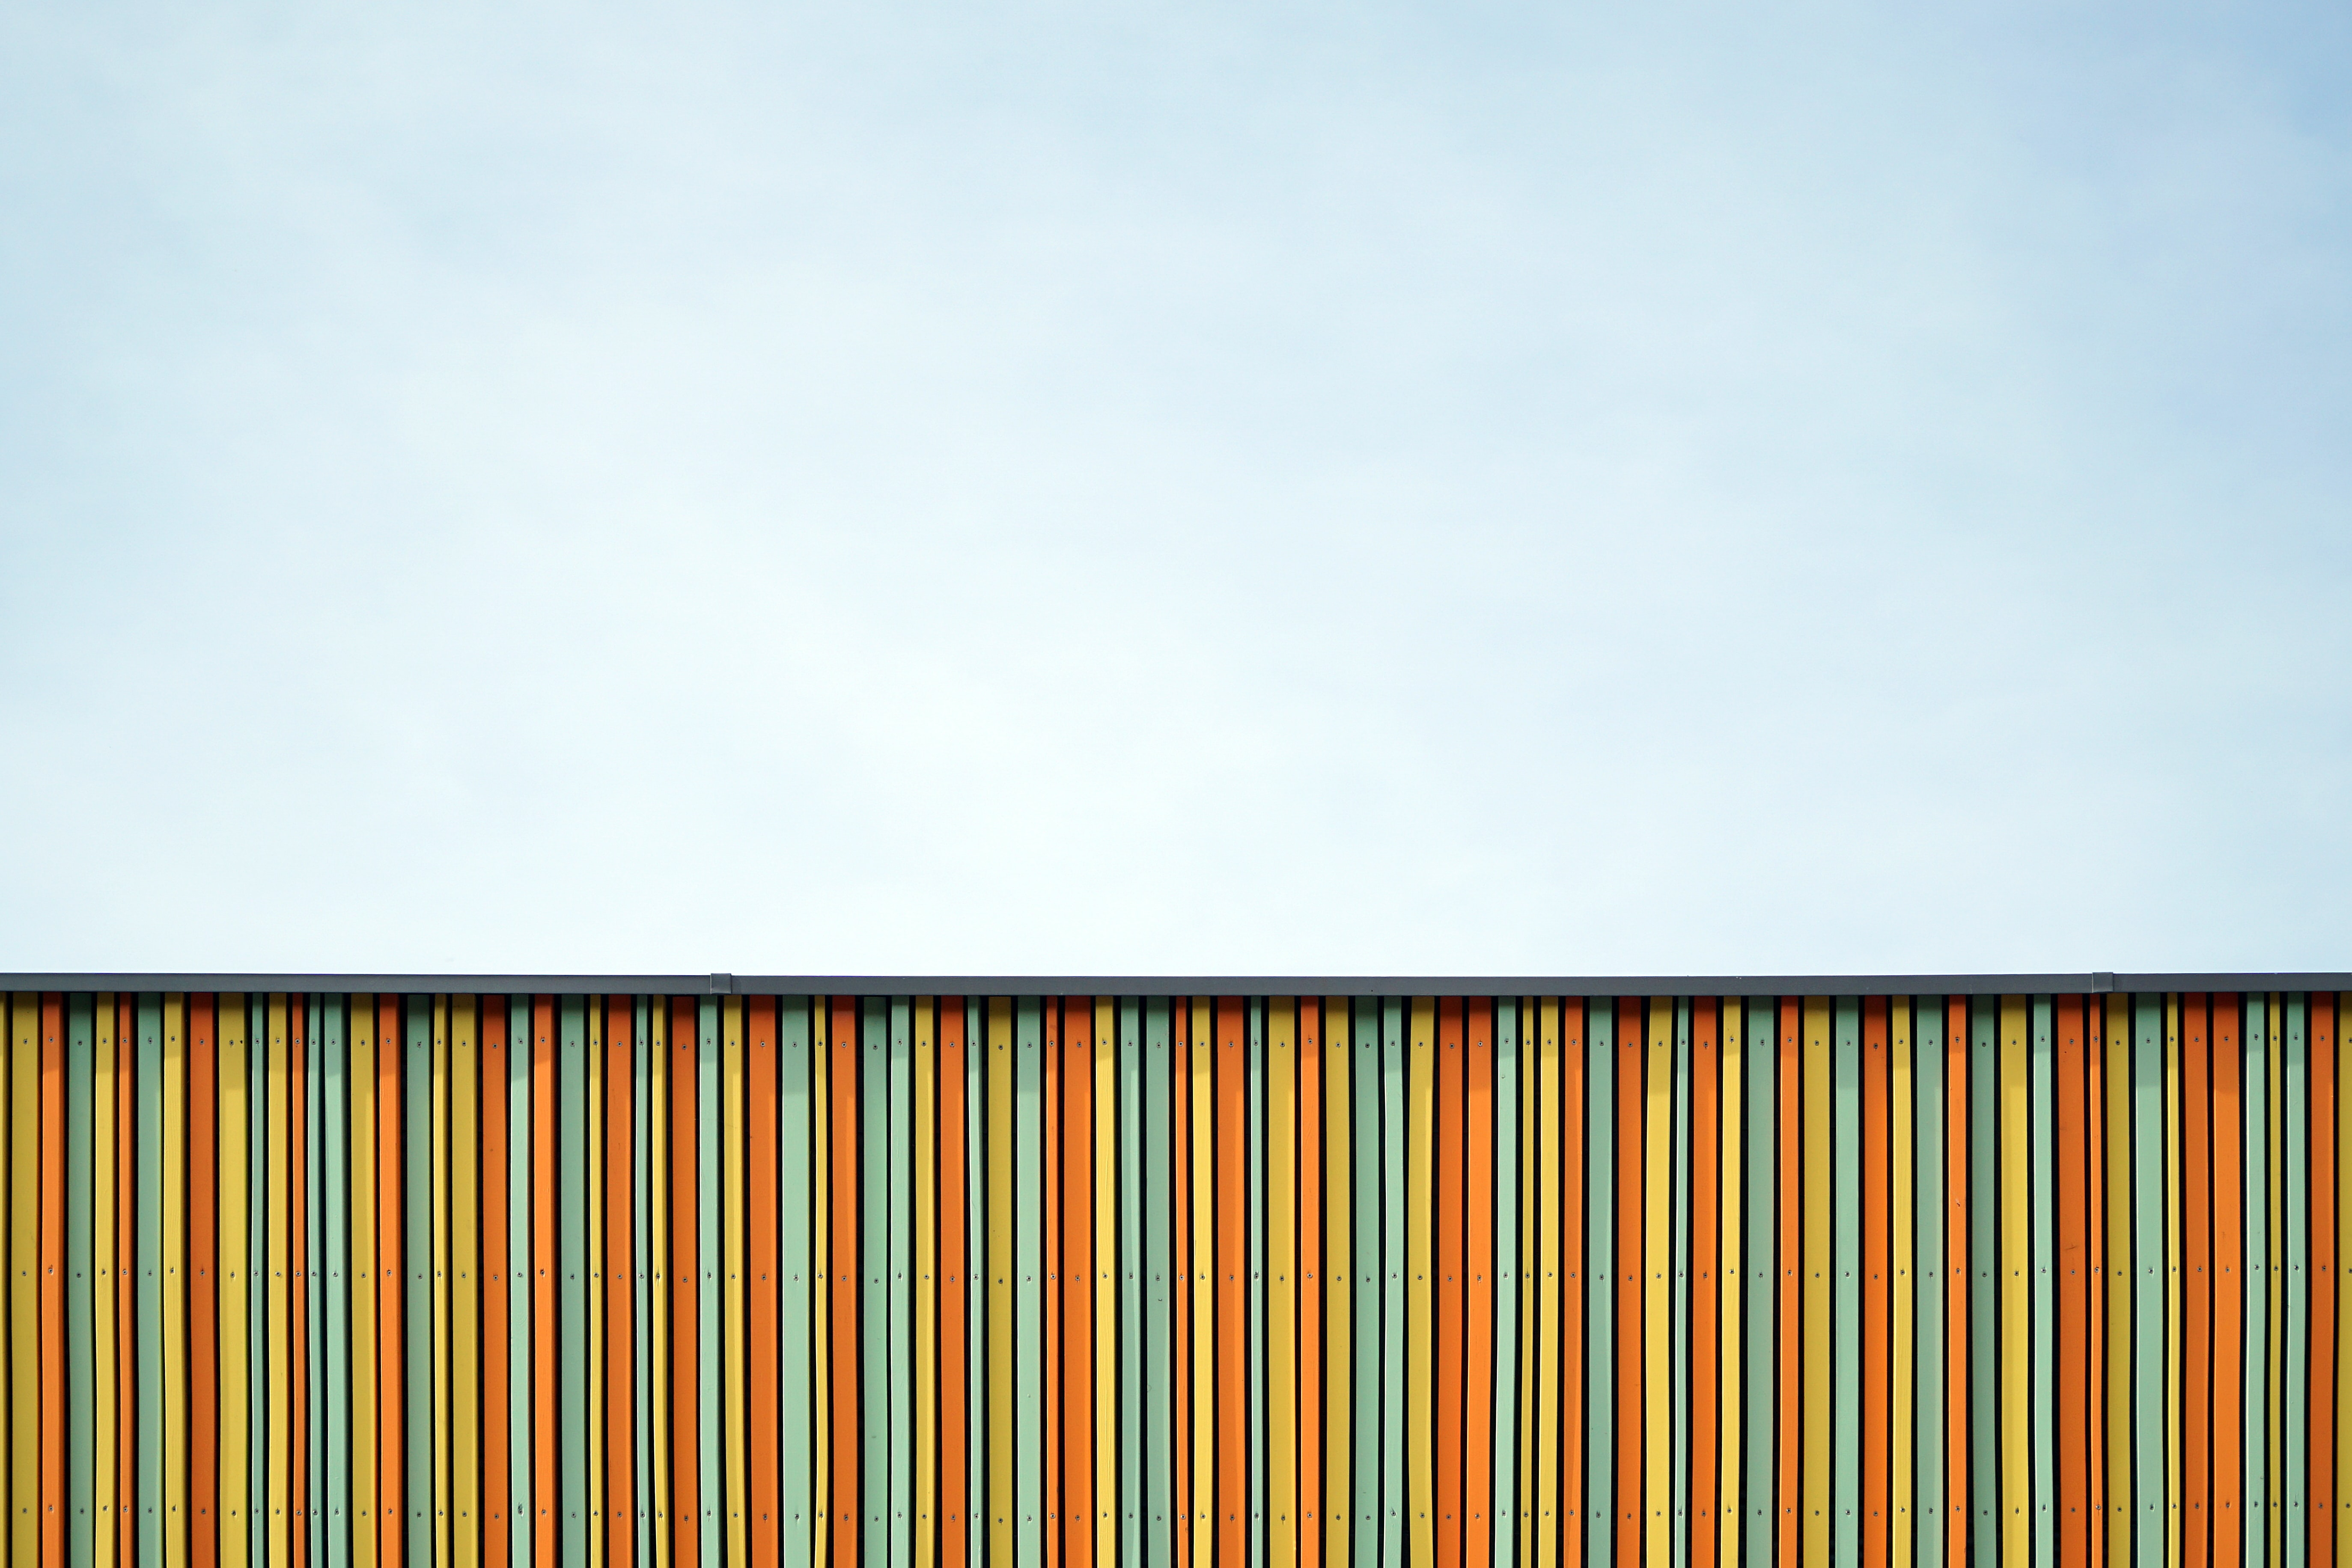 A colorful striped line facade and clouded skyline in Nuremberg, Bavaria in Germany